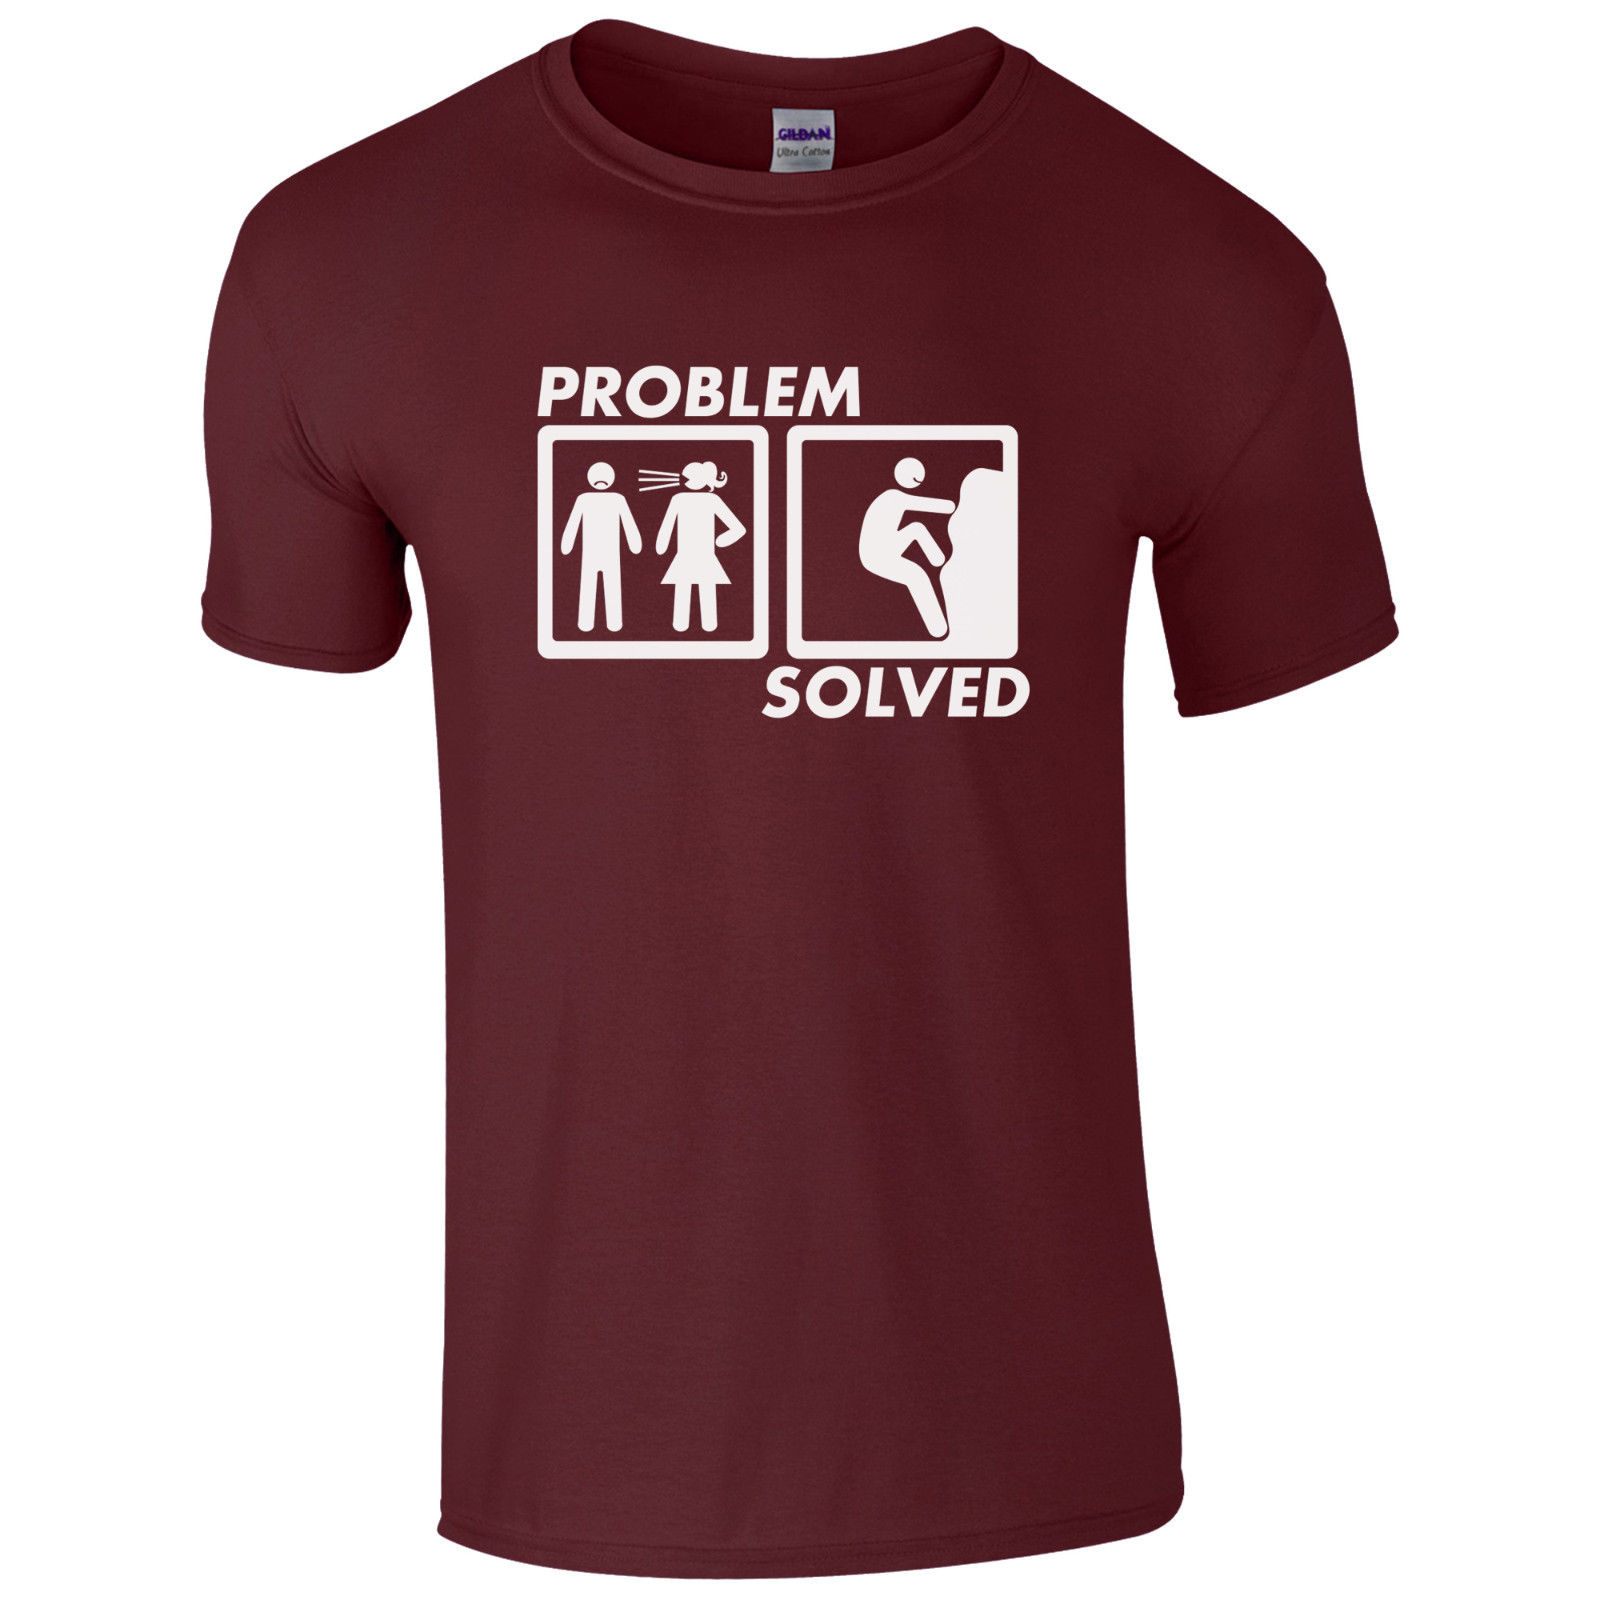 Problem Solved ROCK CLIMBINGS Funny T-Shirt High Quality Printed T Shirt Top Cotton Short Sleeve Tshirt Camisa Masculina